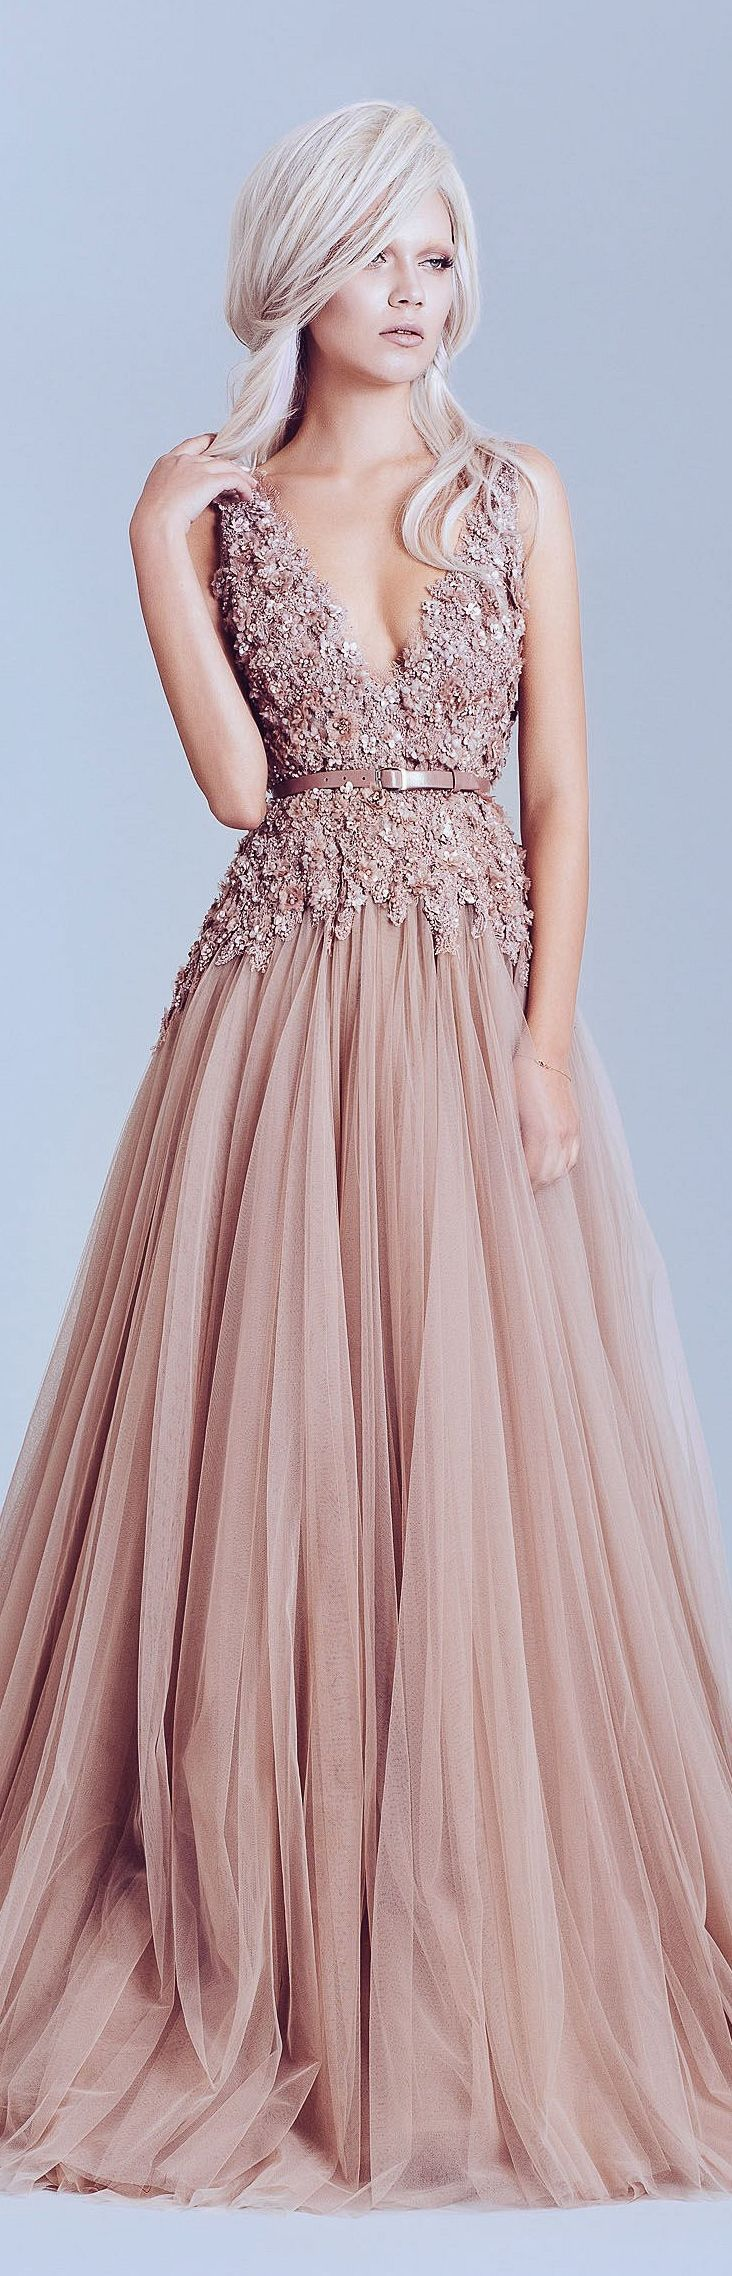 Nude and blush gowns in the closet i should own pinterest